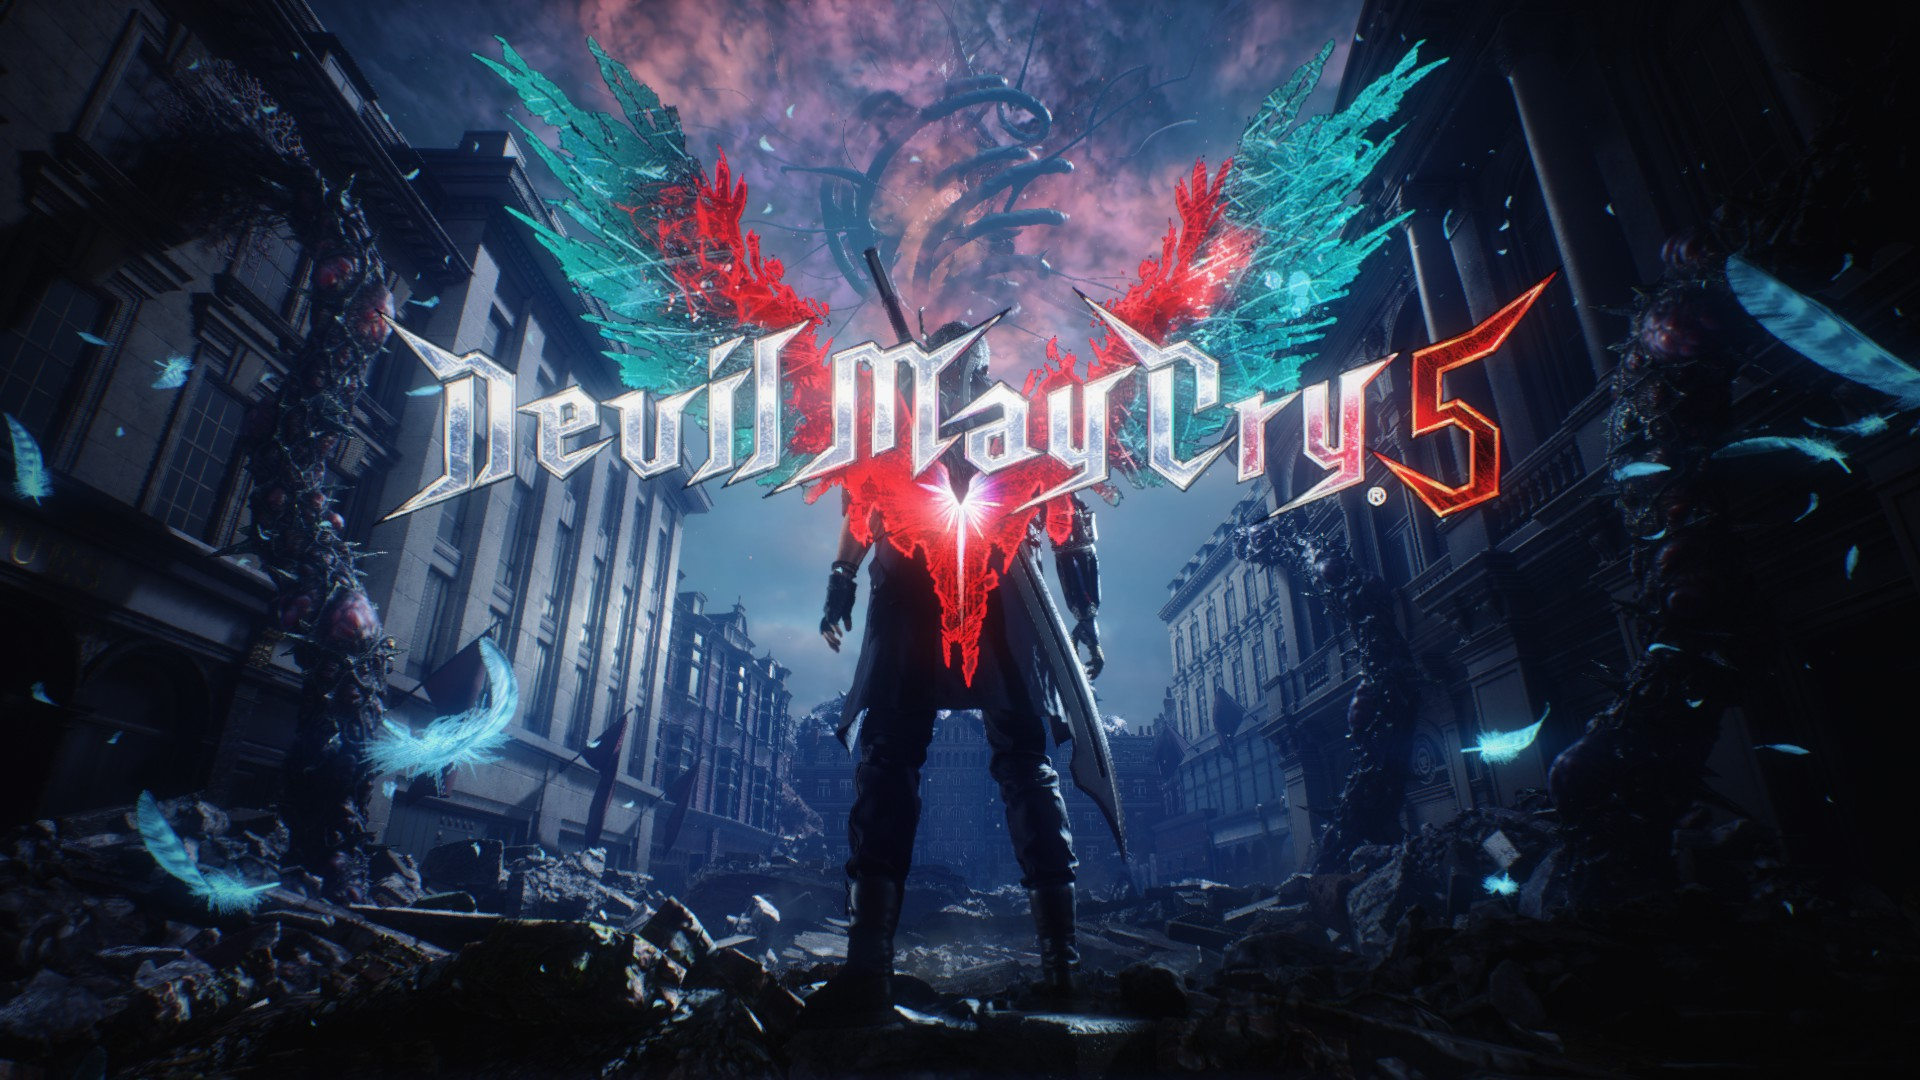 Steam Community :: Guide :: How to play Devil May Cry 5